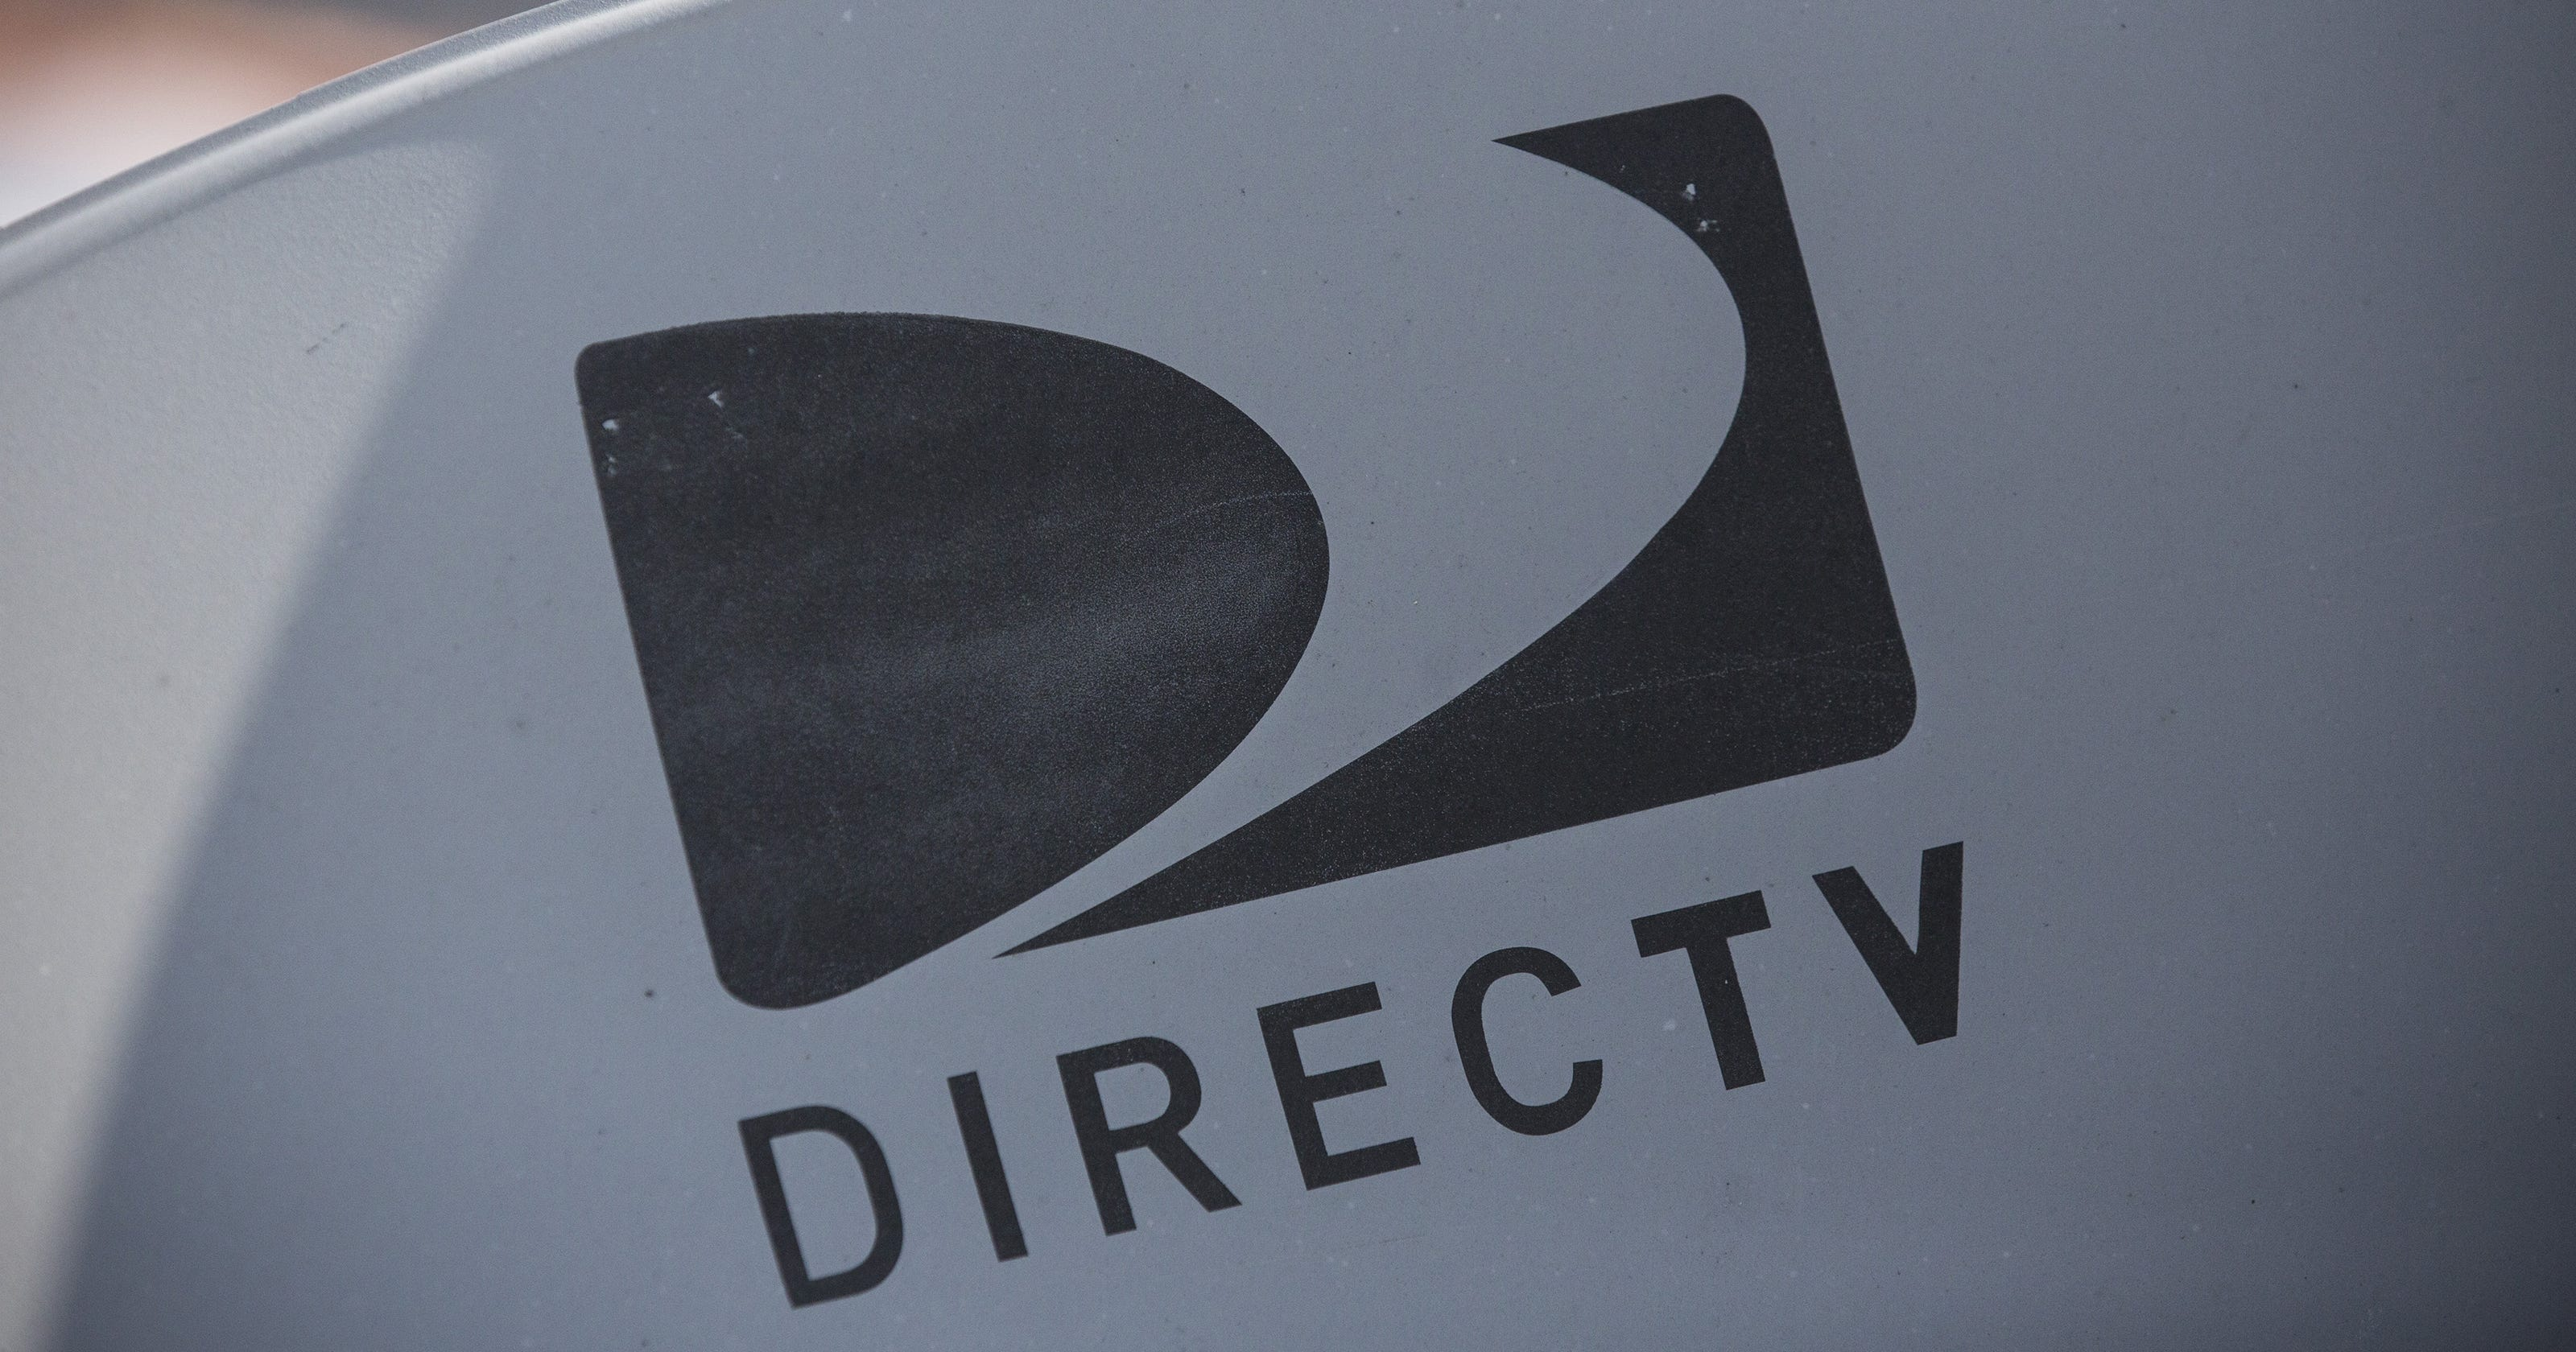 Ftc Directv Two Year Contract Adds Up To False Advertising